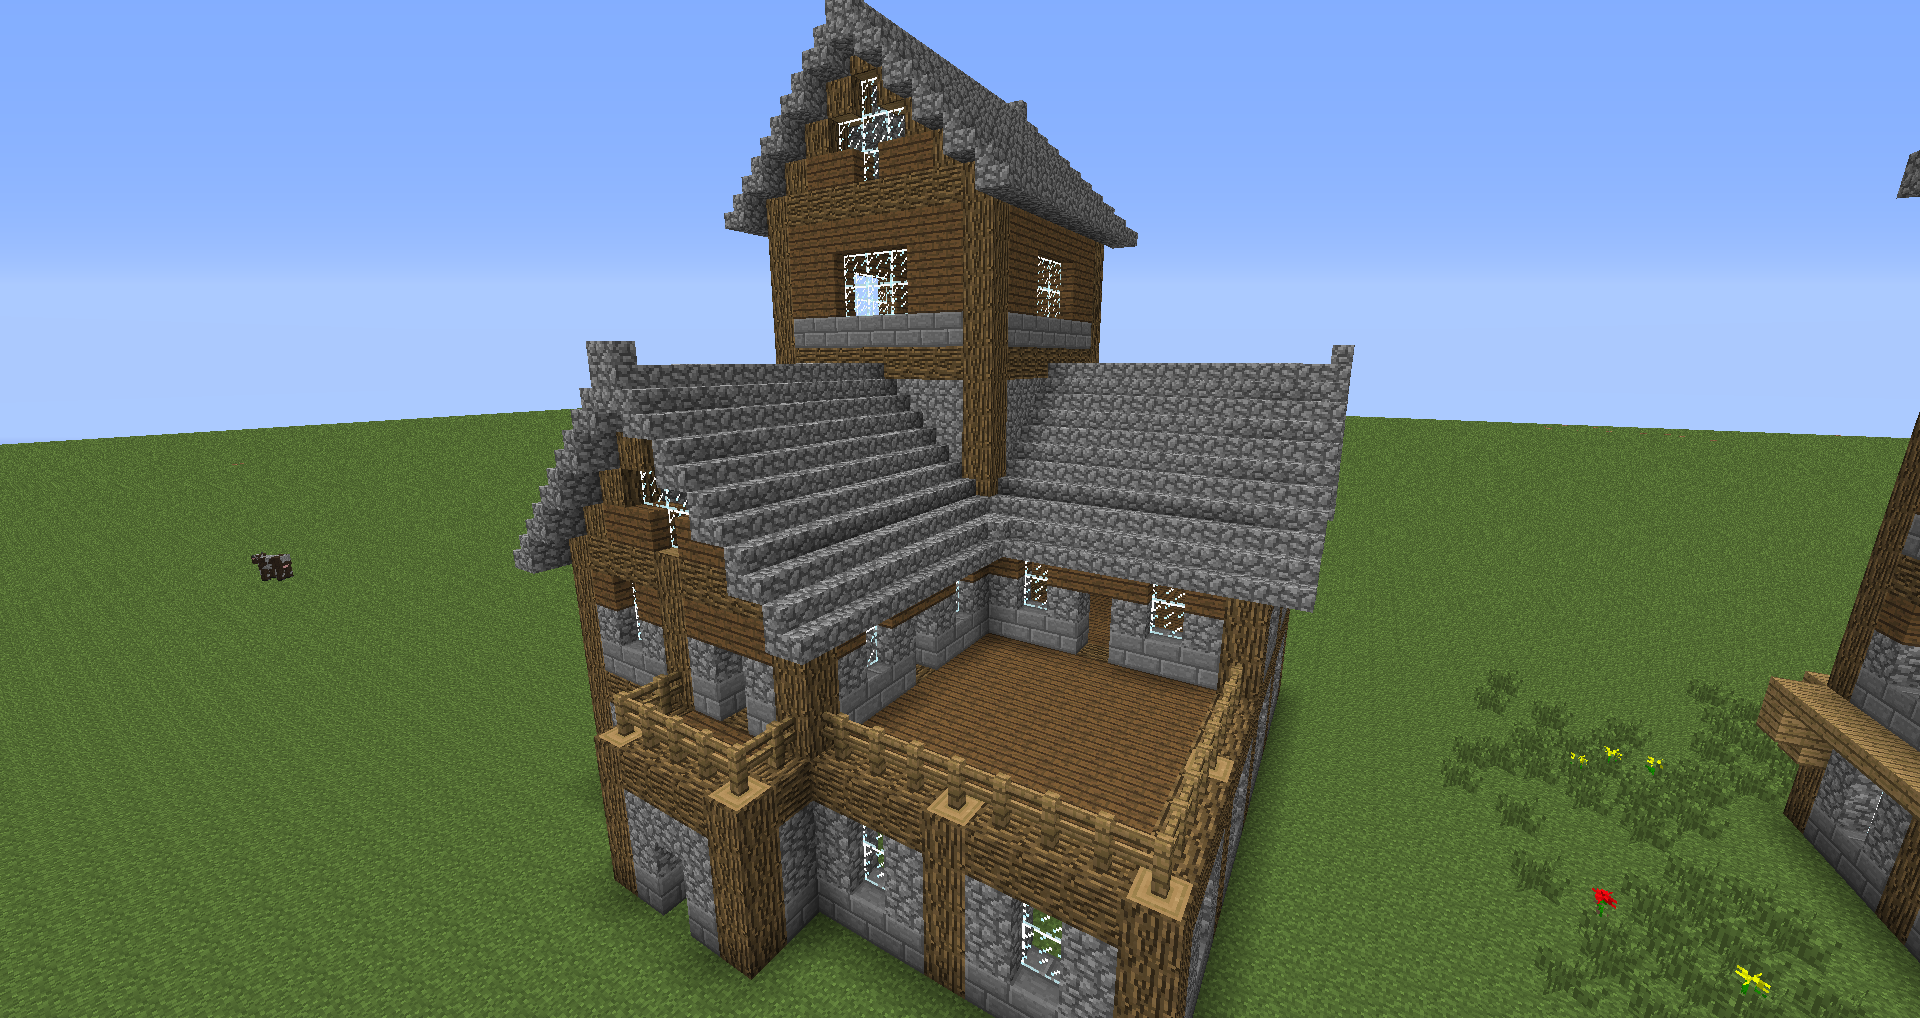 ac31e26298ec50509e82414802d975c2 - 33+ Simple Small House Design Minecraft Images